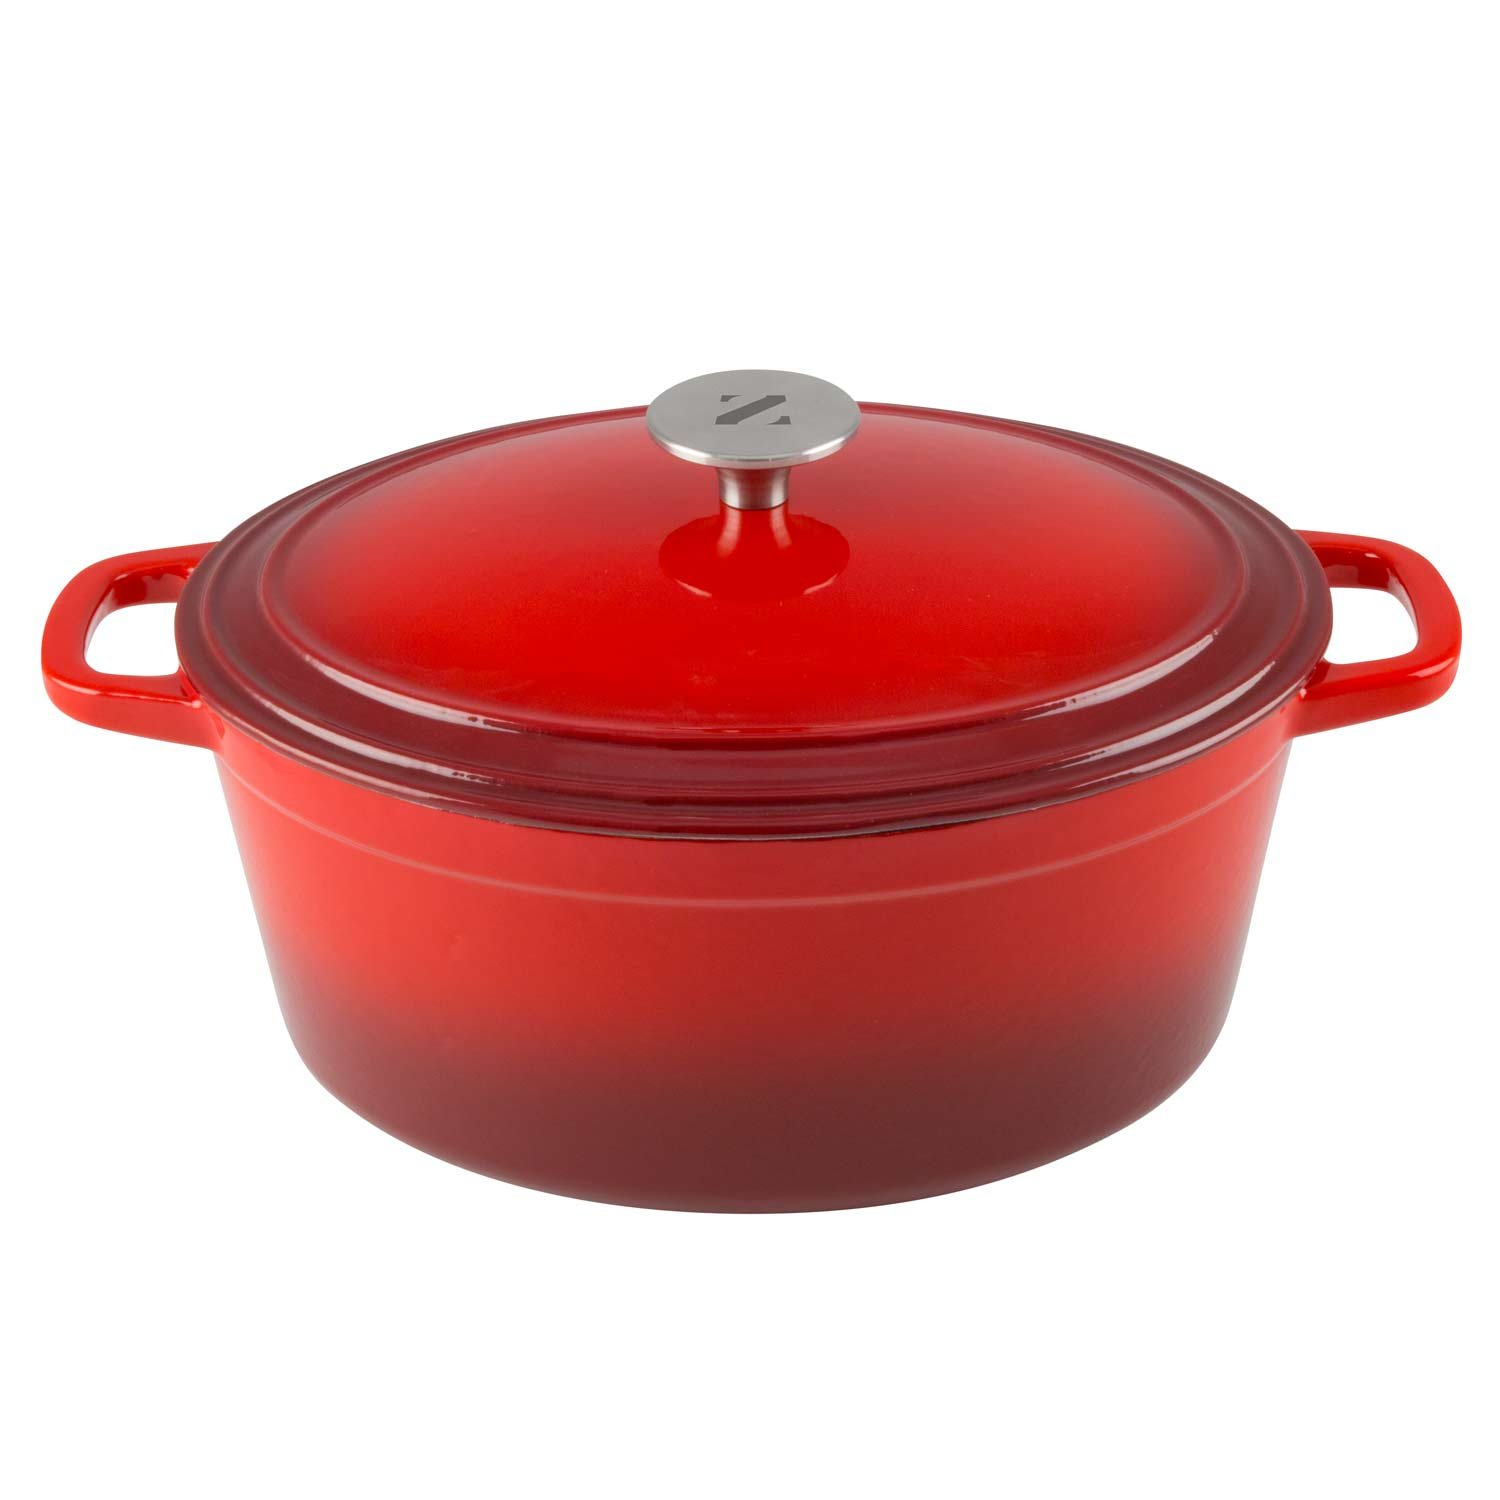 Zelancio 6 Quart Cast Iron Enamel Covered Oval Dutch Oven Cooking Dish with Skillet Lid (Cayenne Red) ZEL-DO-6-OVL-RED